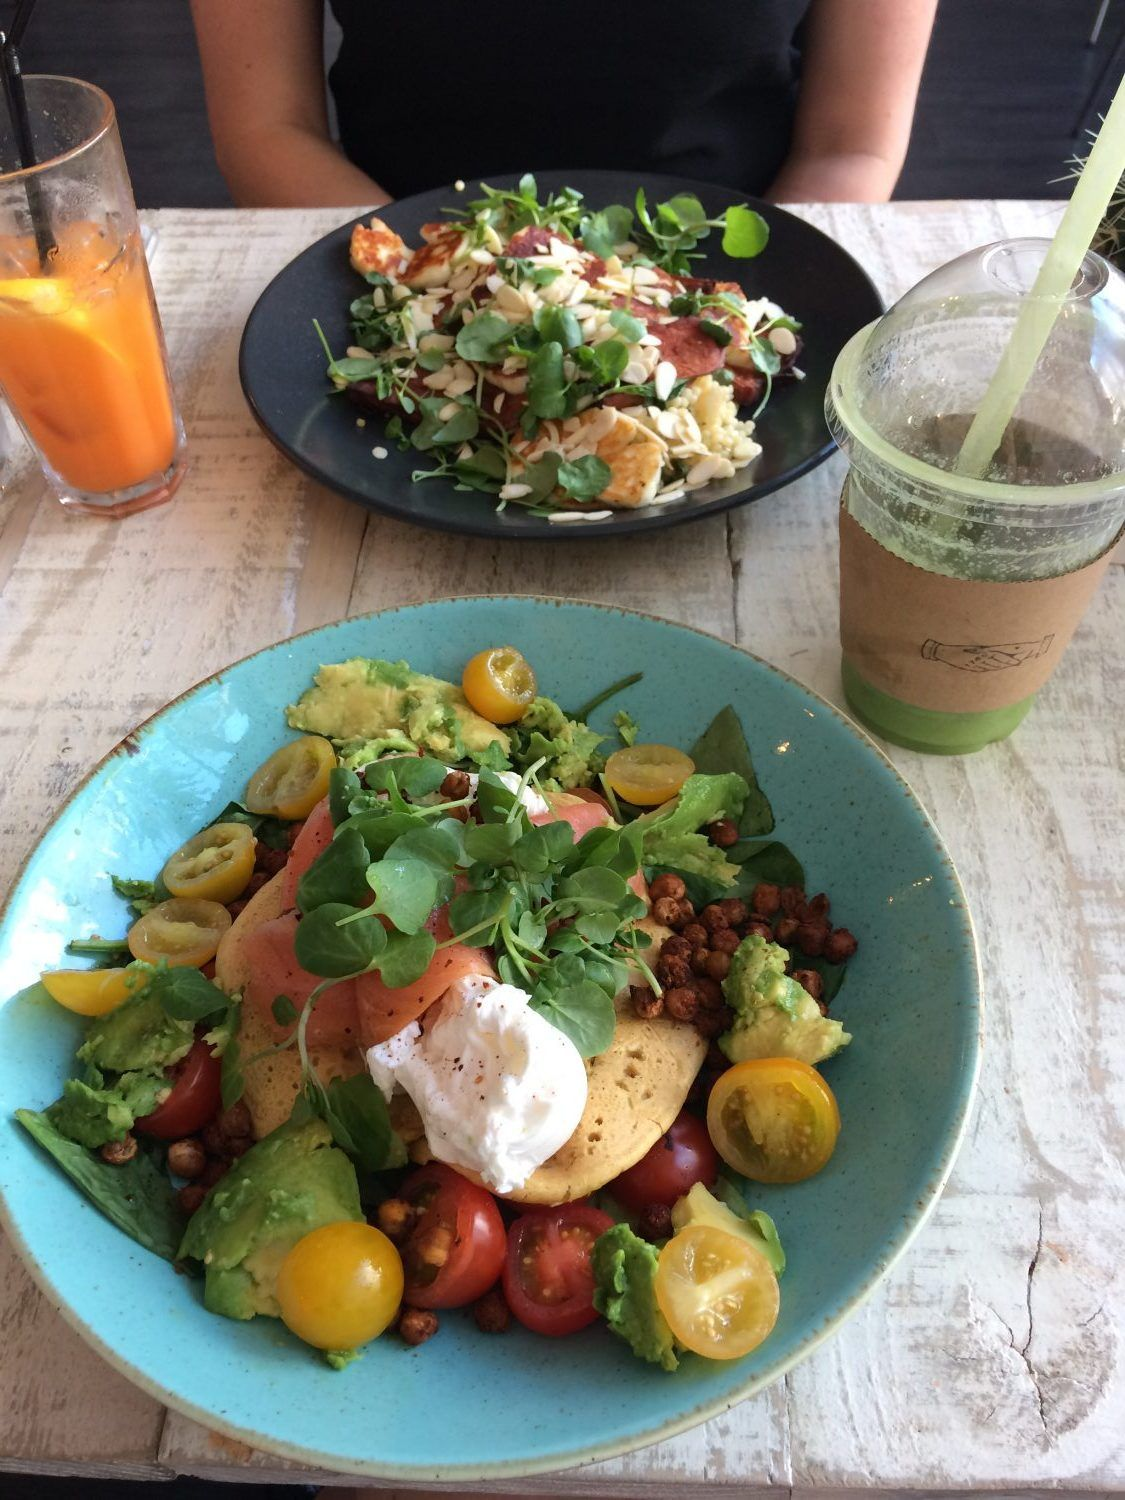 Eating out: Love Thy Neighbour organic cafe/restaurant/bar in Liverpool, England.  Smoothies, cocktails and healthy dishes.